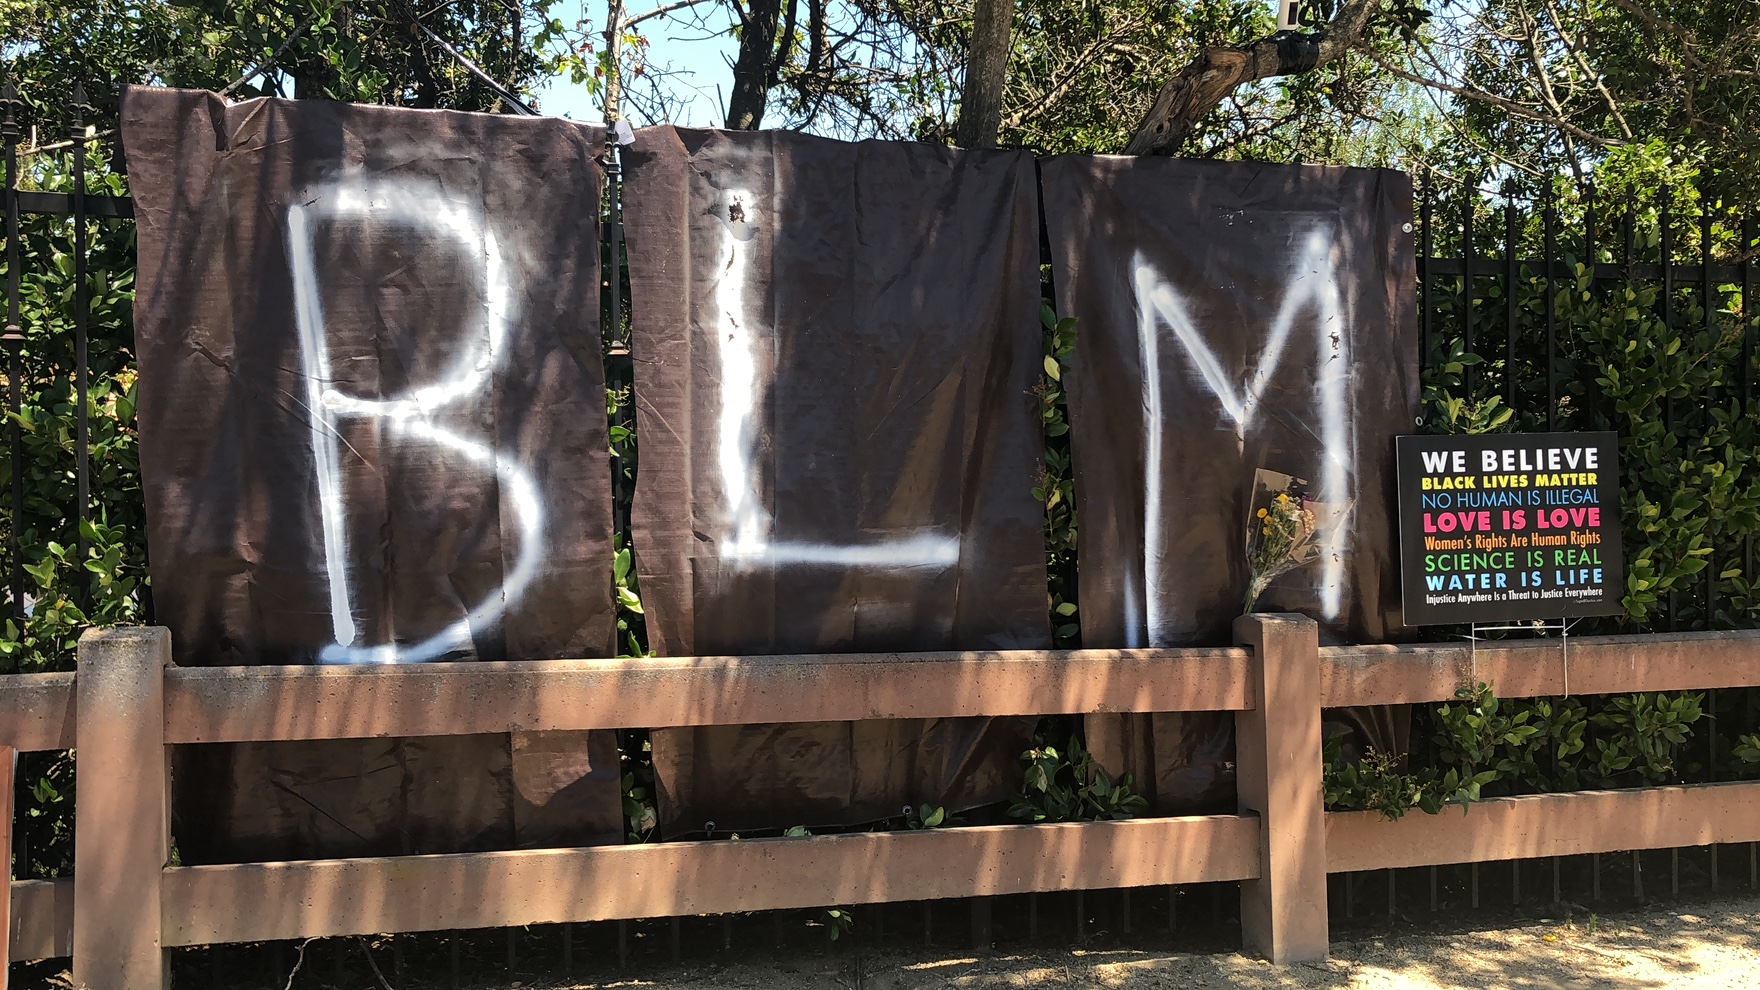 BLM sign vandalized in Thousand Oaks